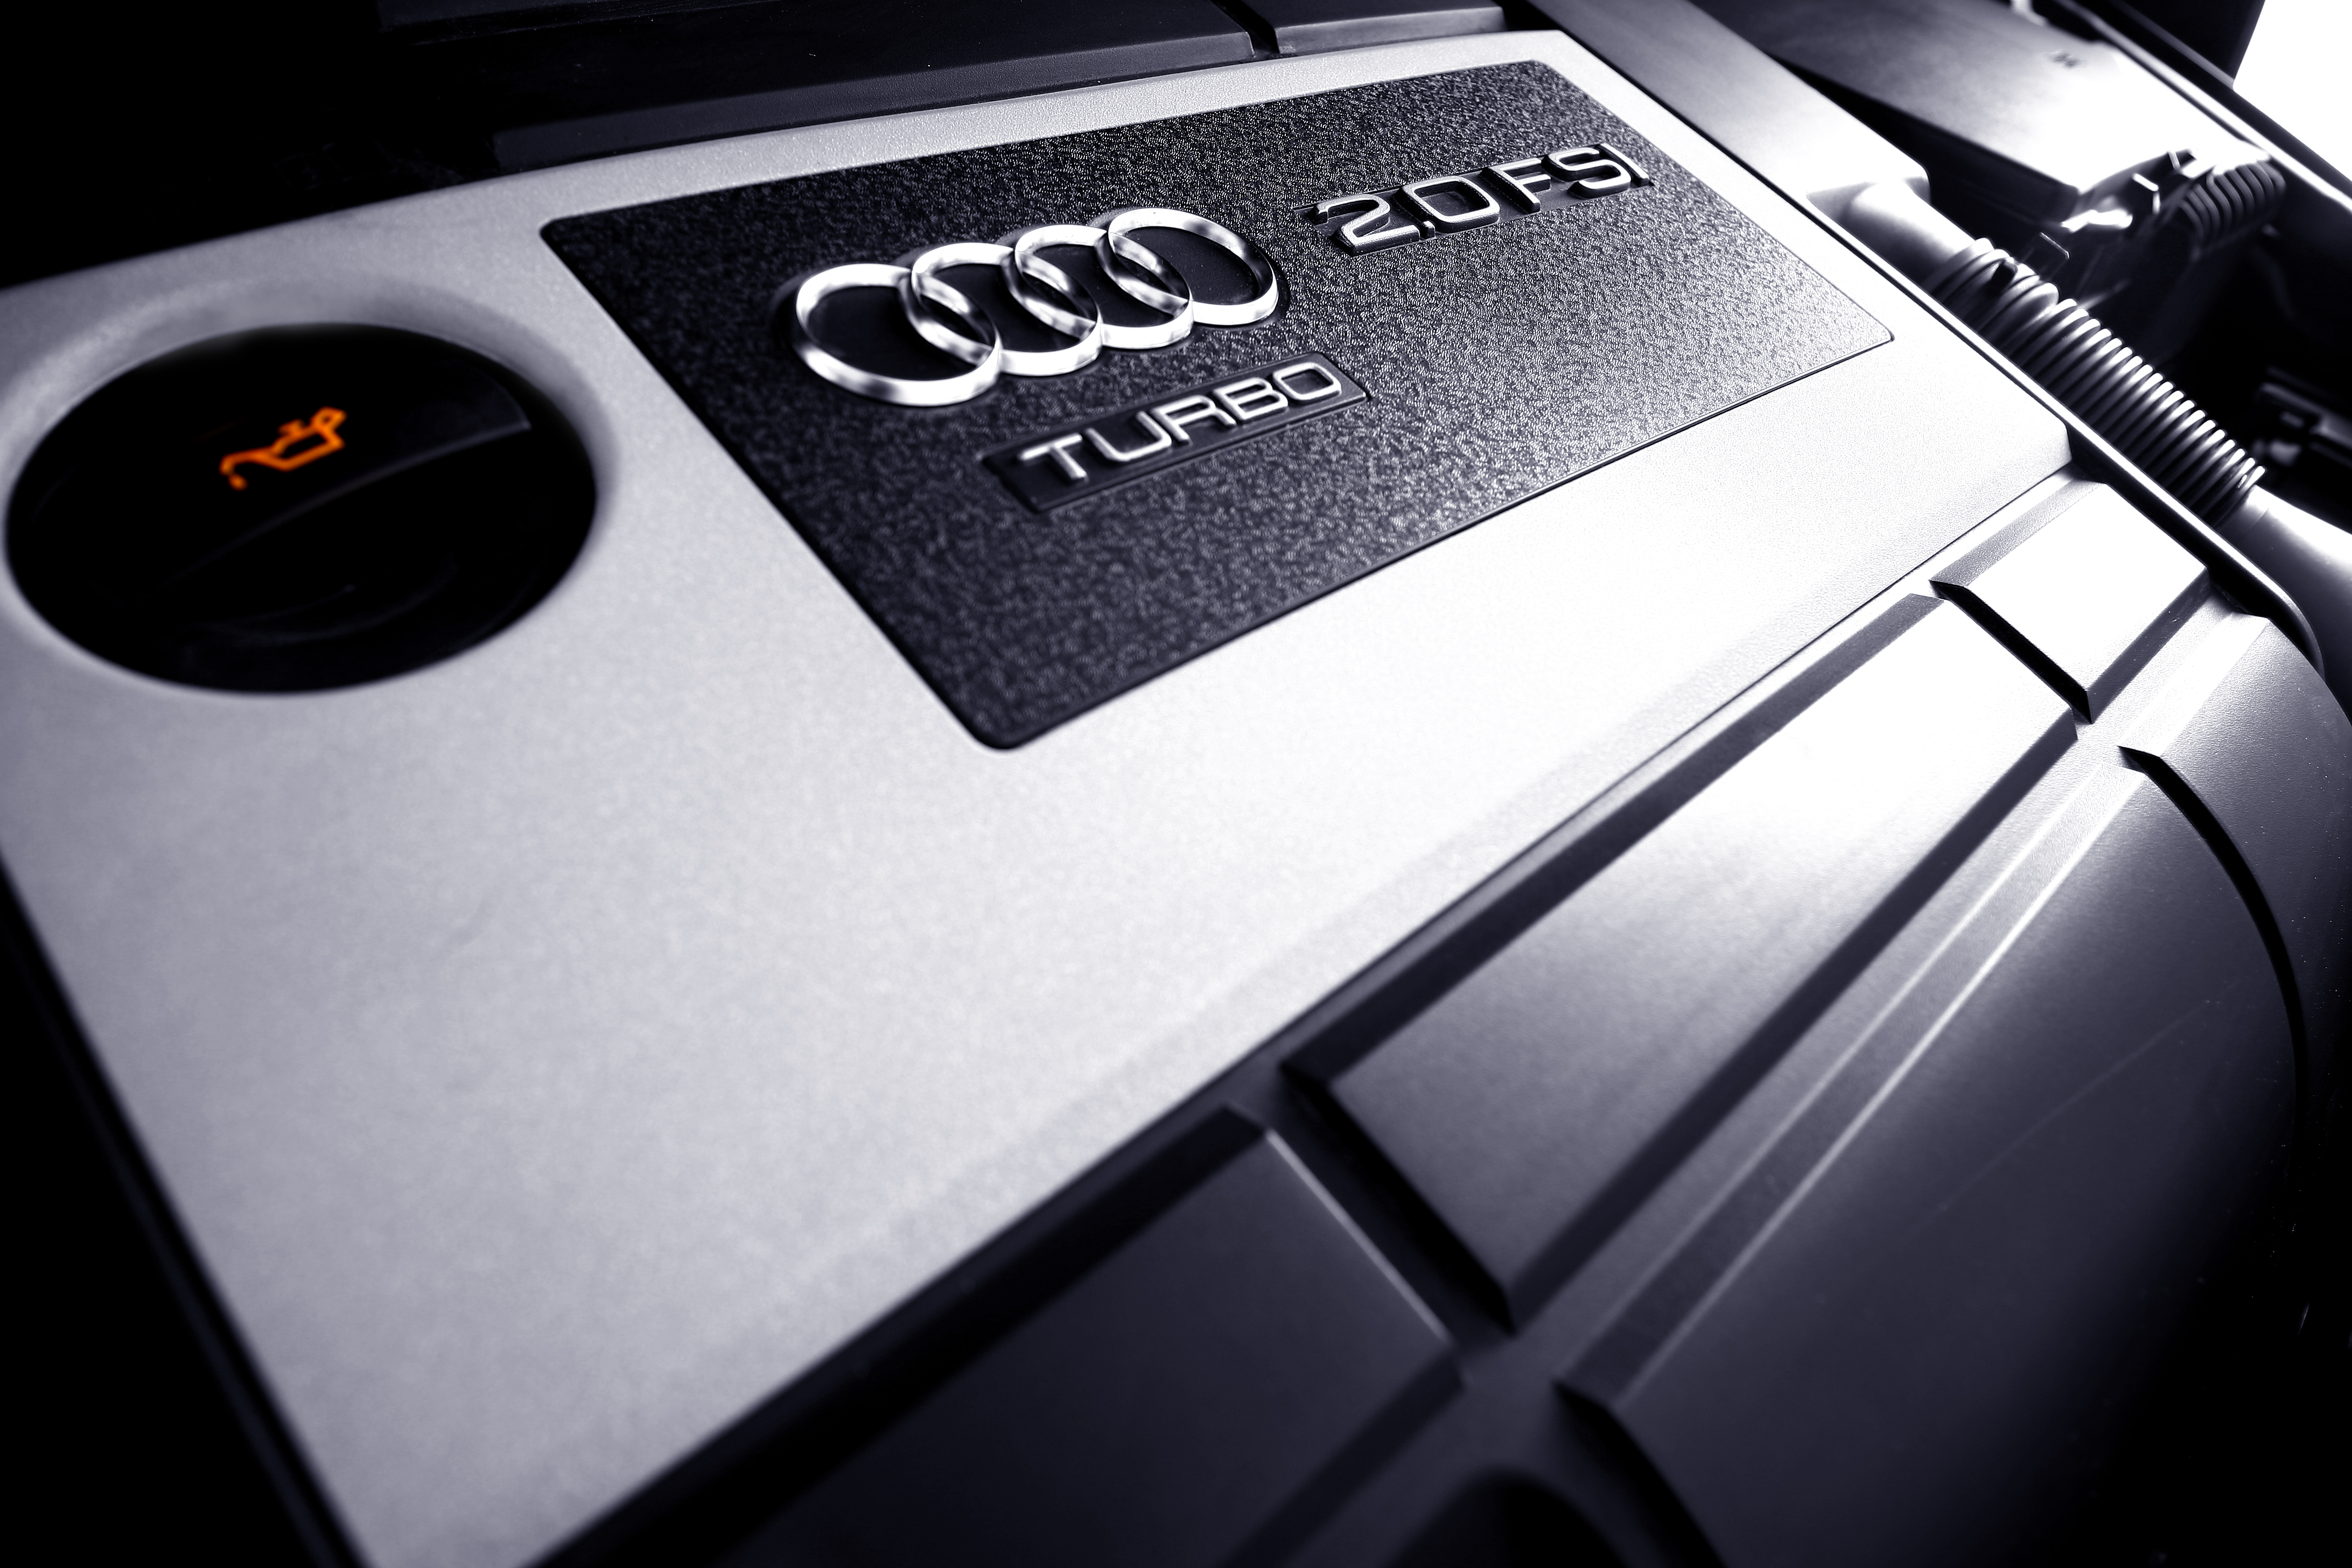 Product photo, audi, engine